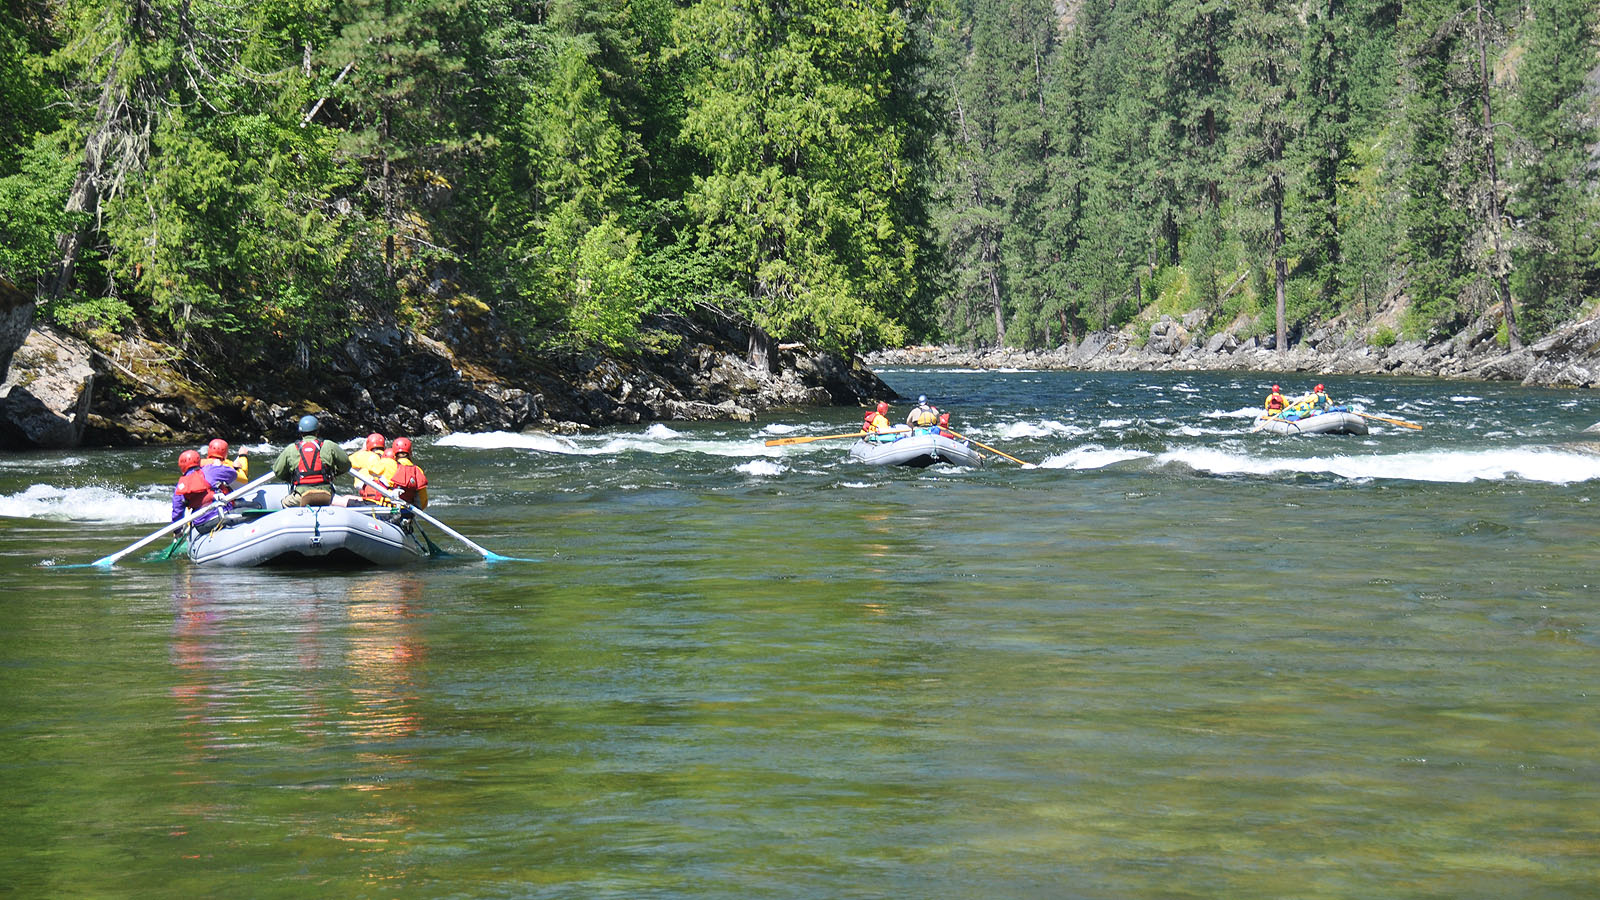 Some smaller rapids on the Selway River in Idaho